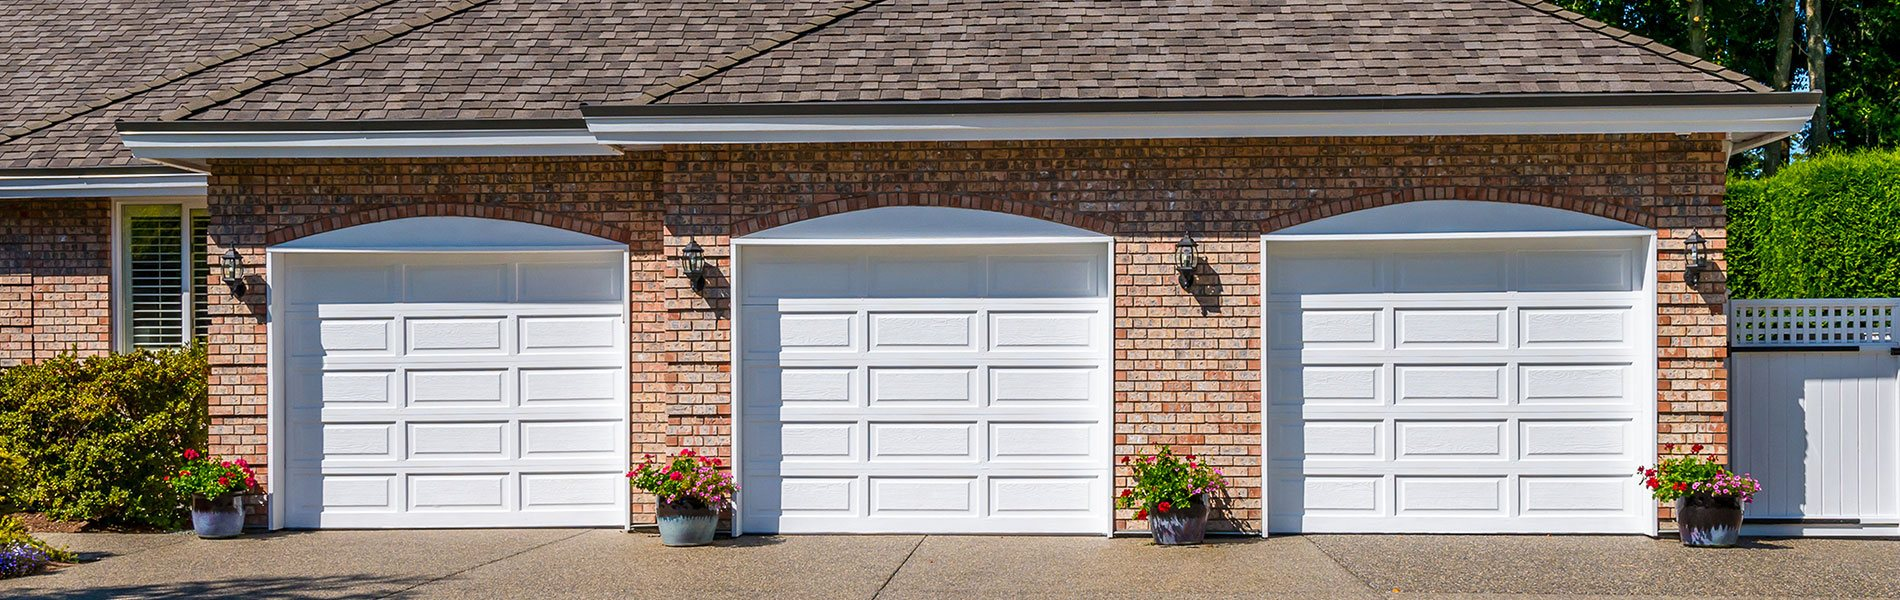 Galaxy Garage Door Service, Flushing, NY 347-482-2553